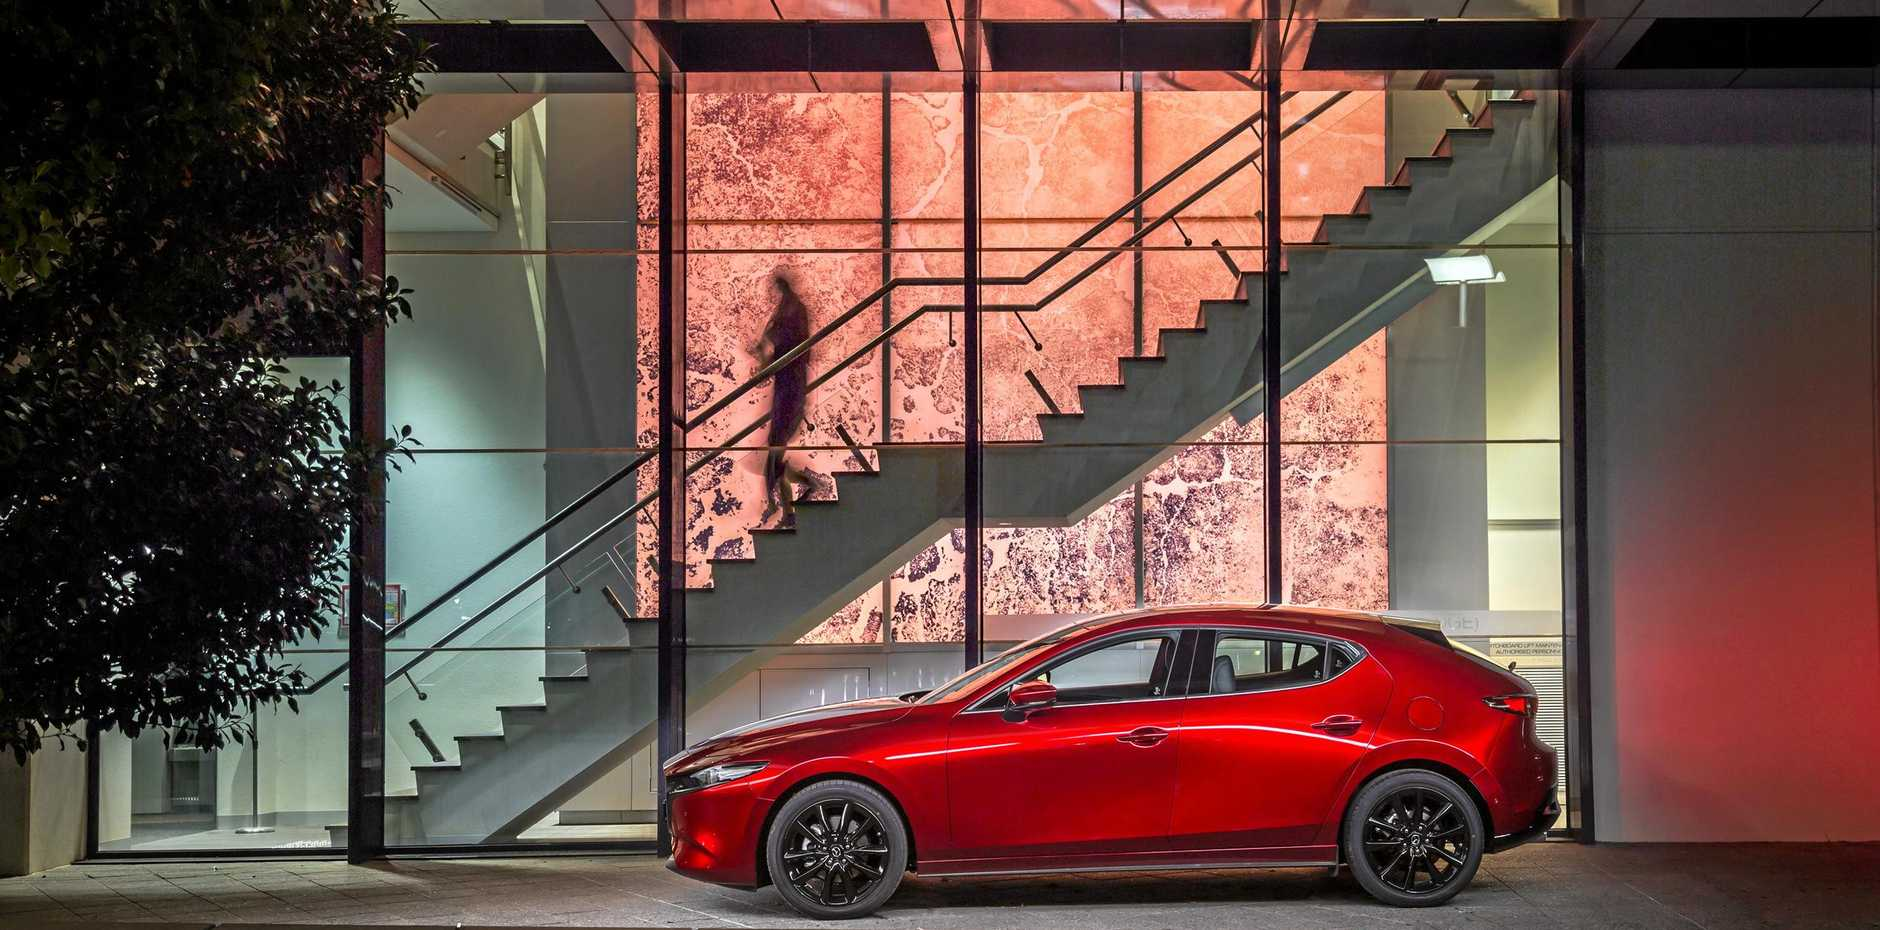 The 2019 model Mazda3 in Evolve speciviation, which starts from about $30,000 drive-away.